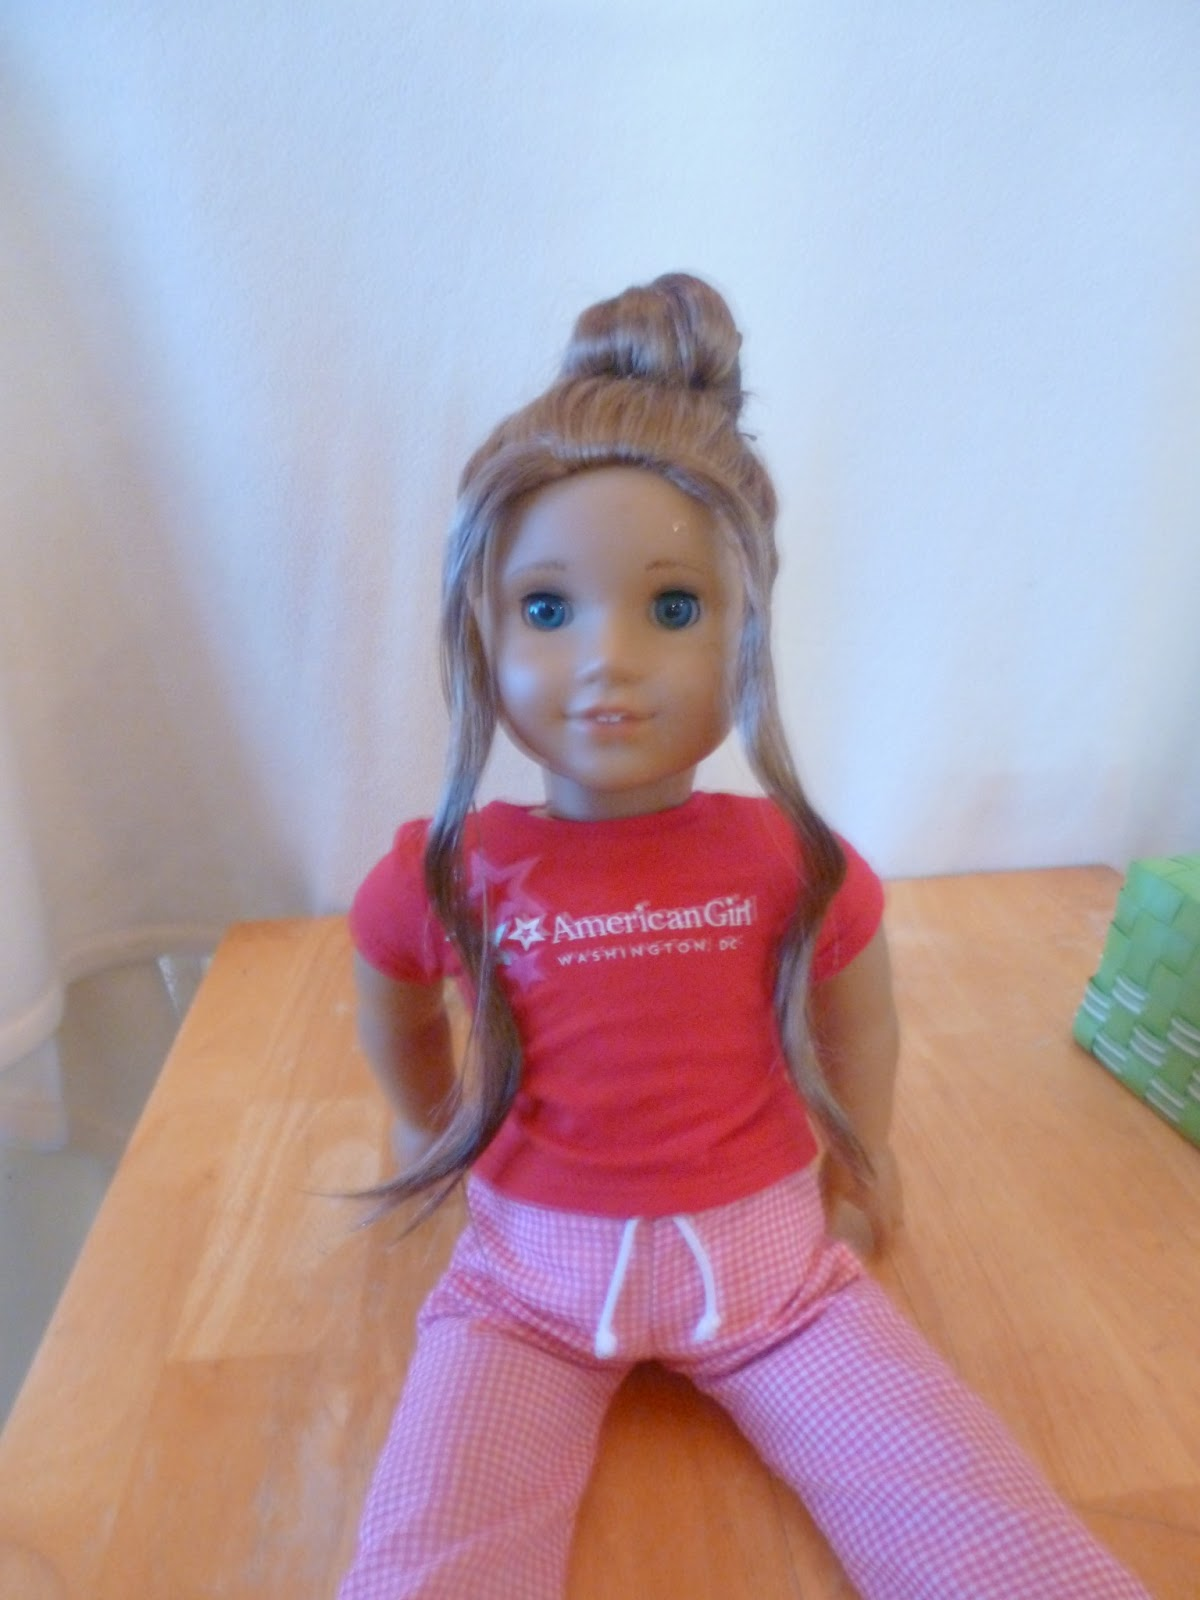 American Girl Doll Disney Hairstyles : Supercharged acura tl car release date